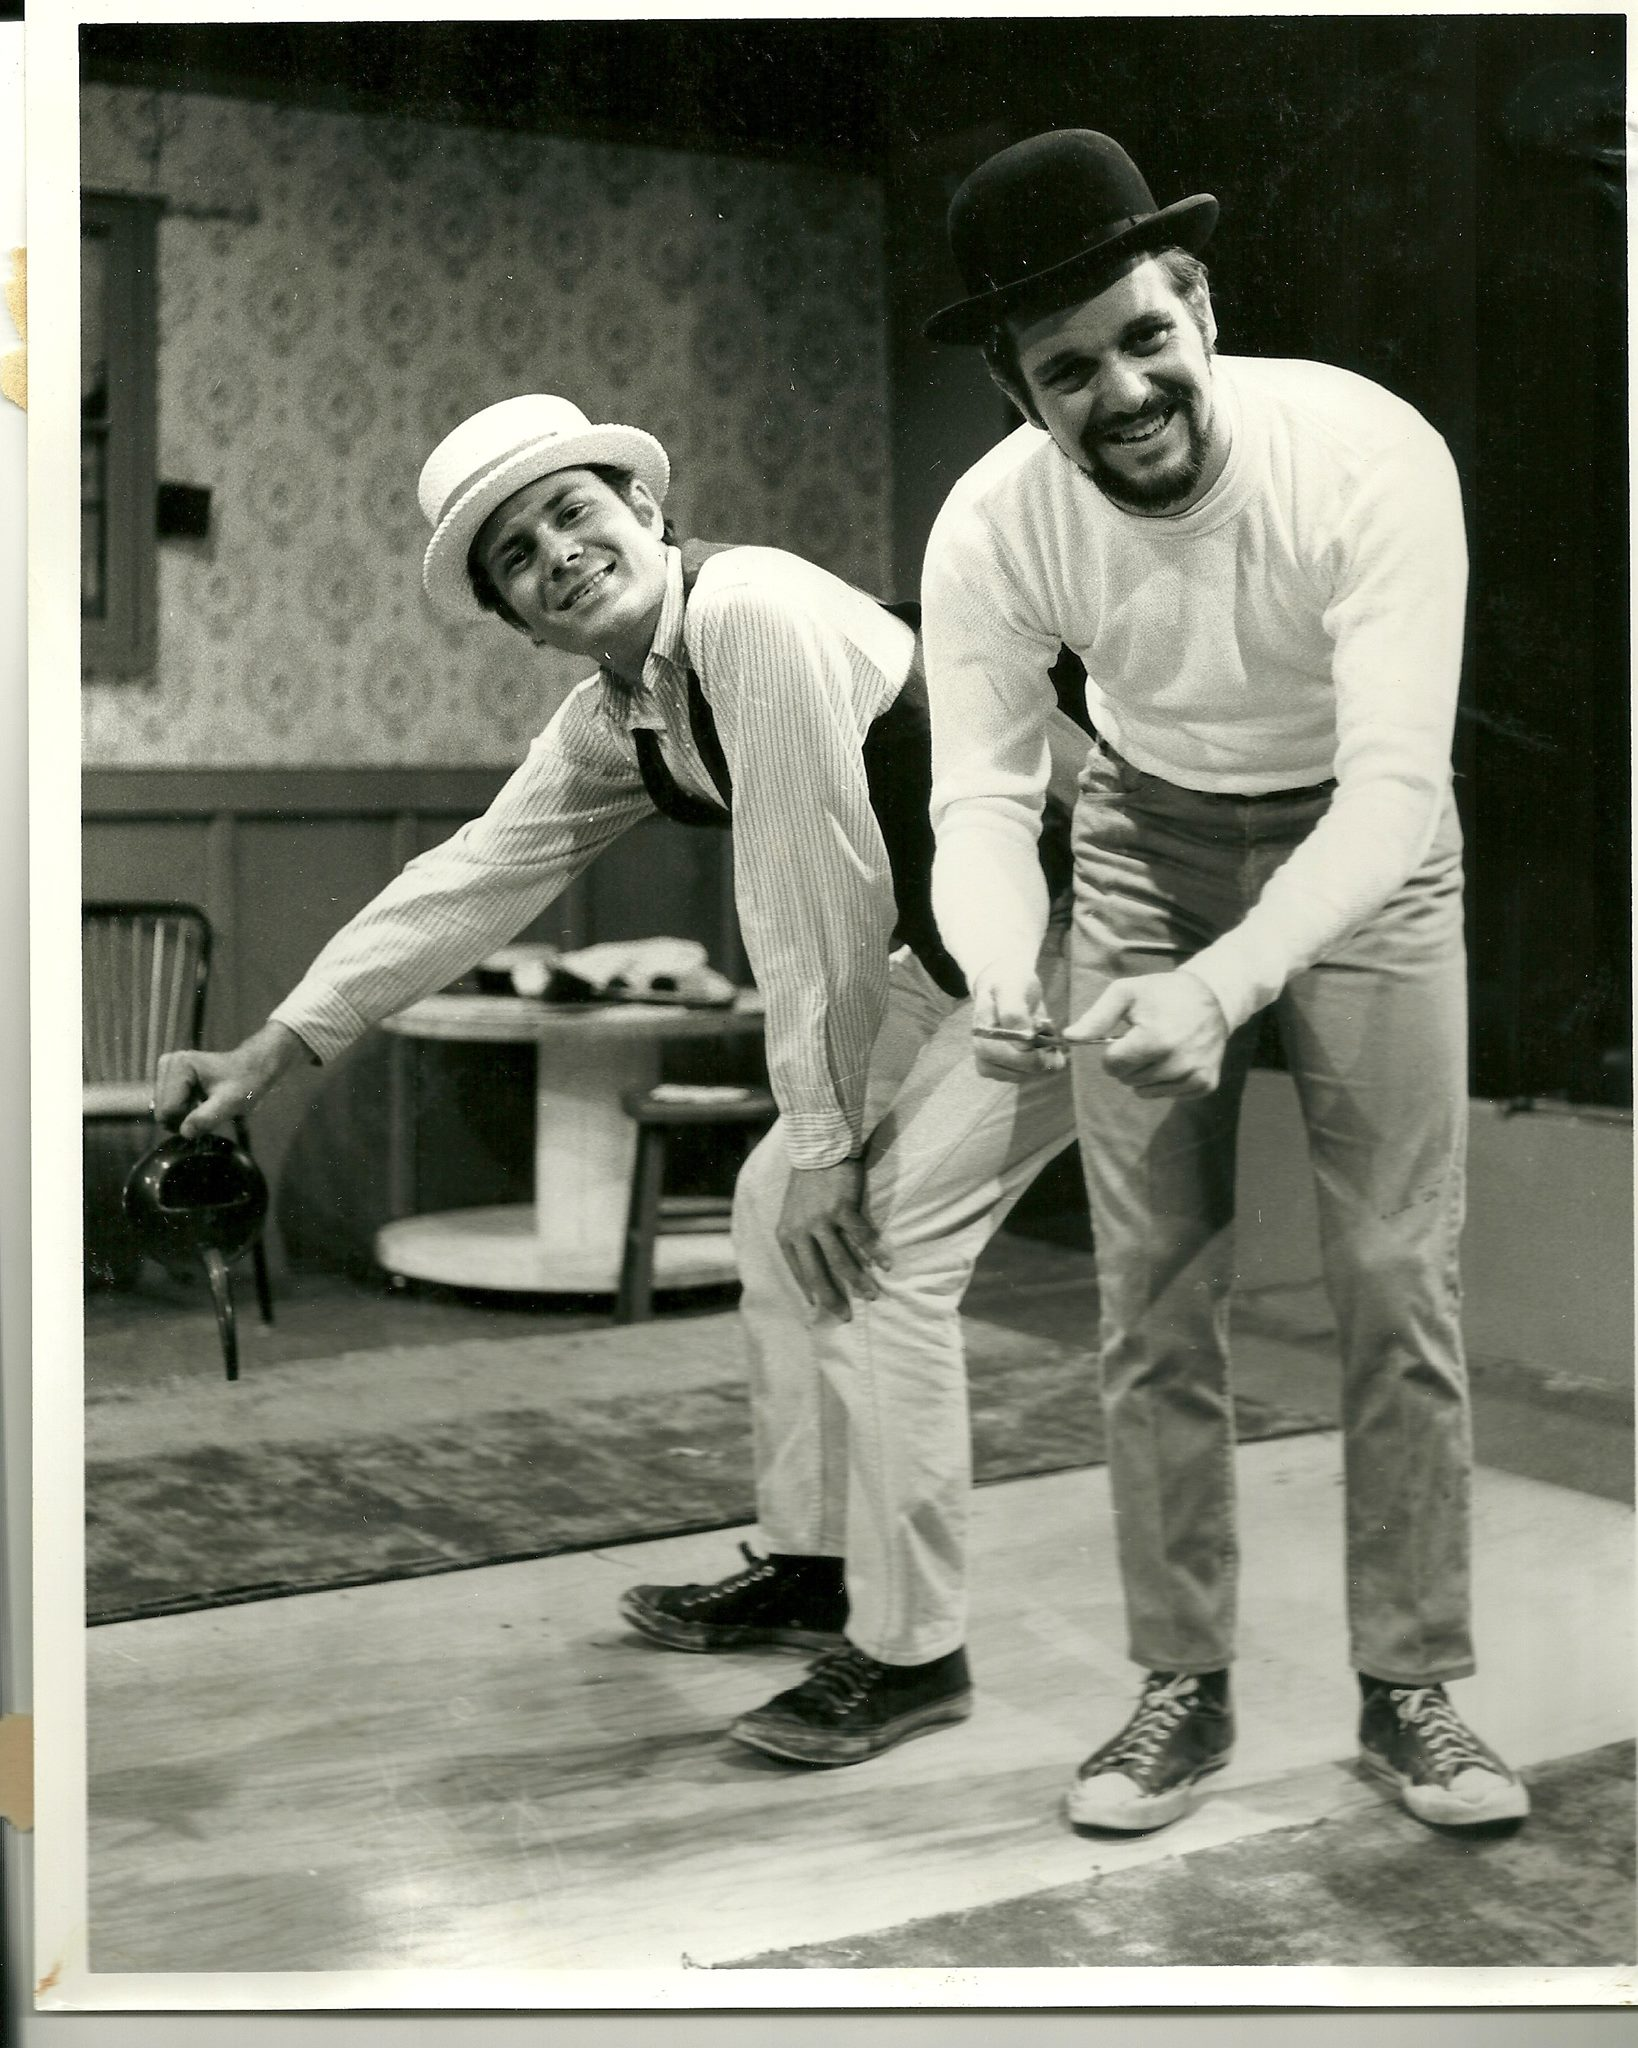 Harold Dixon and David Vining perform in an unknown show a few years later.